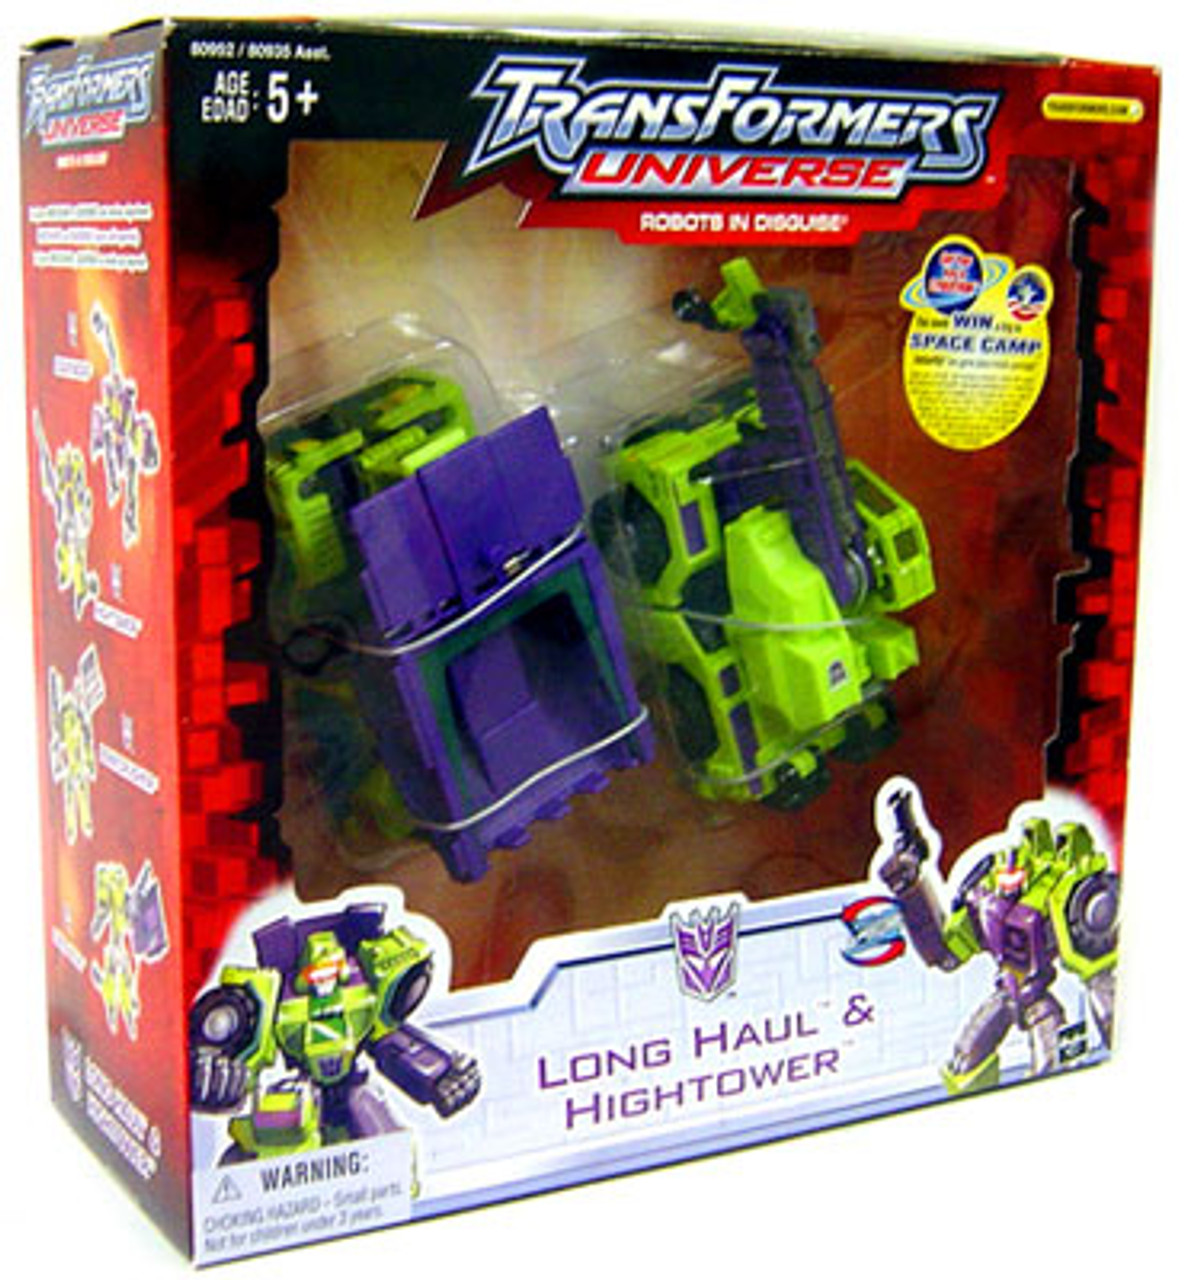 Transformers Universe Robots in Disguise Long Haul & Hightower Action Figure 2-Pack